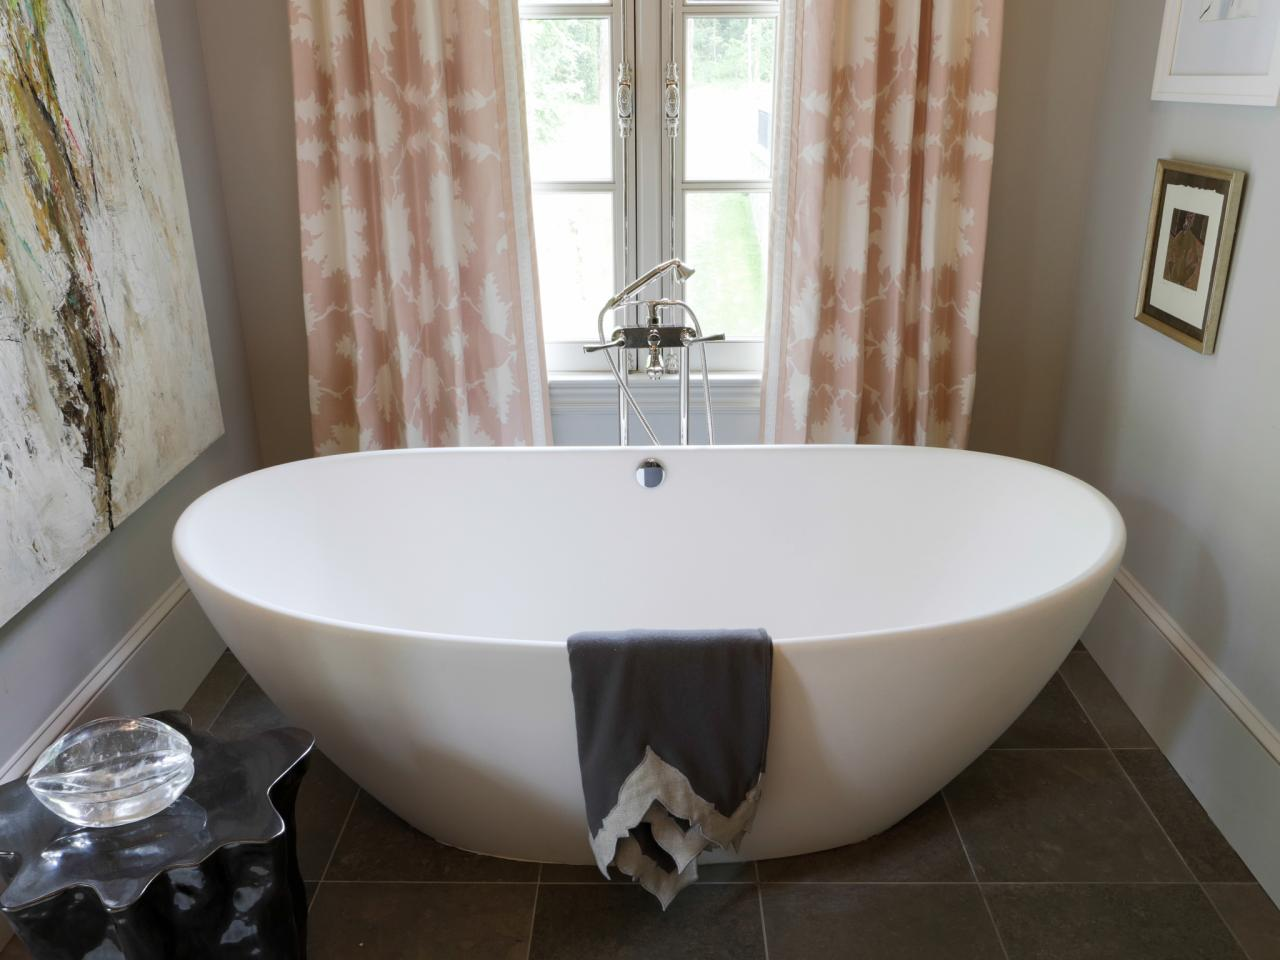 Freestanding tub options pictures ideas tips from hgtv for Bathroom ideas with tub